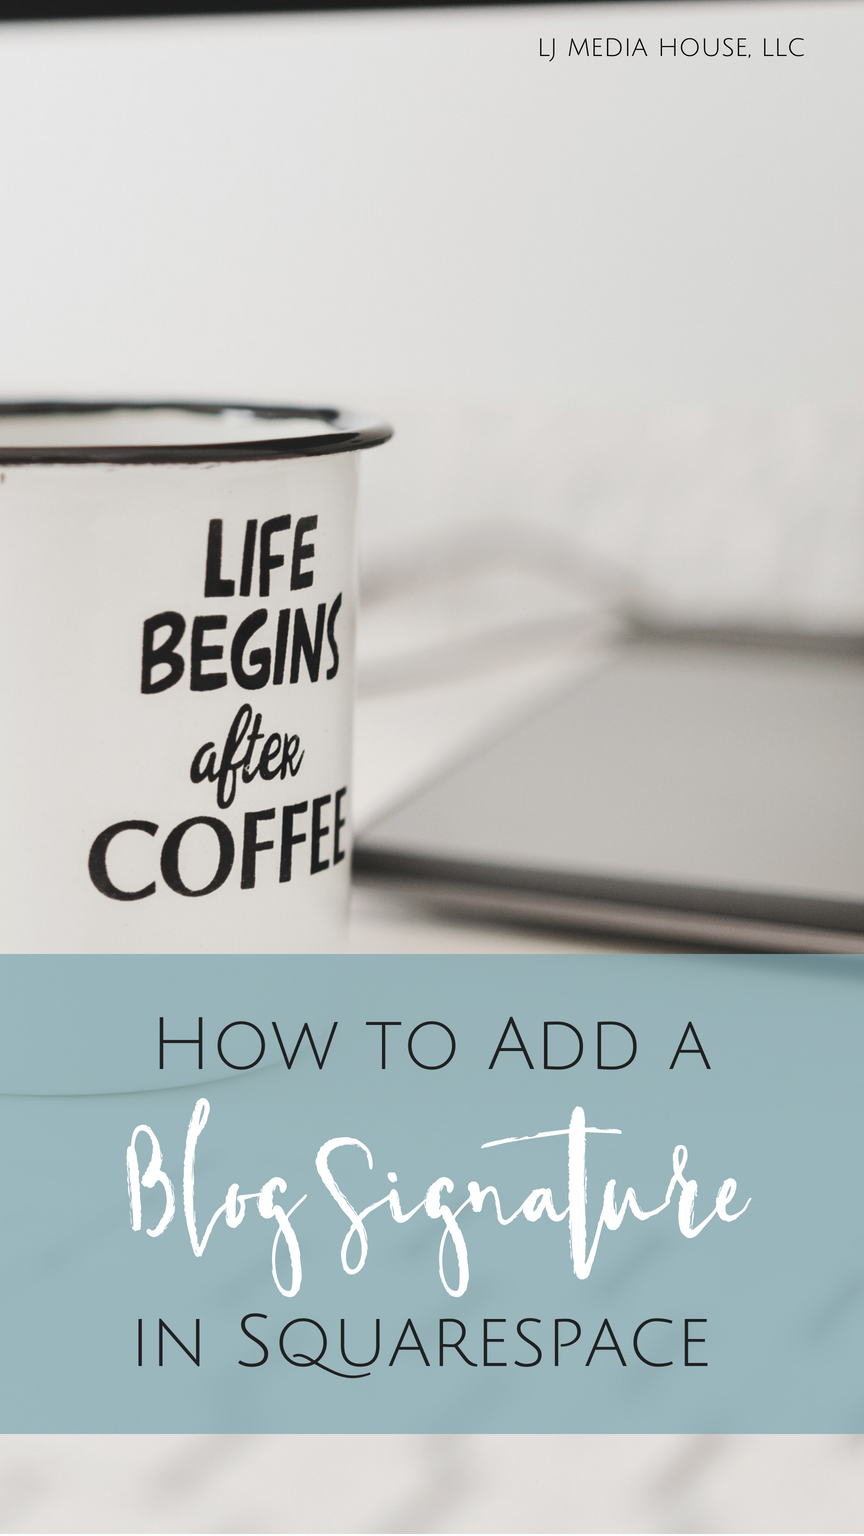 How to Add a Blog Signature in Squarespace